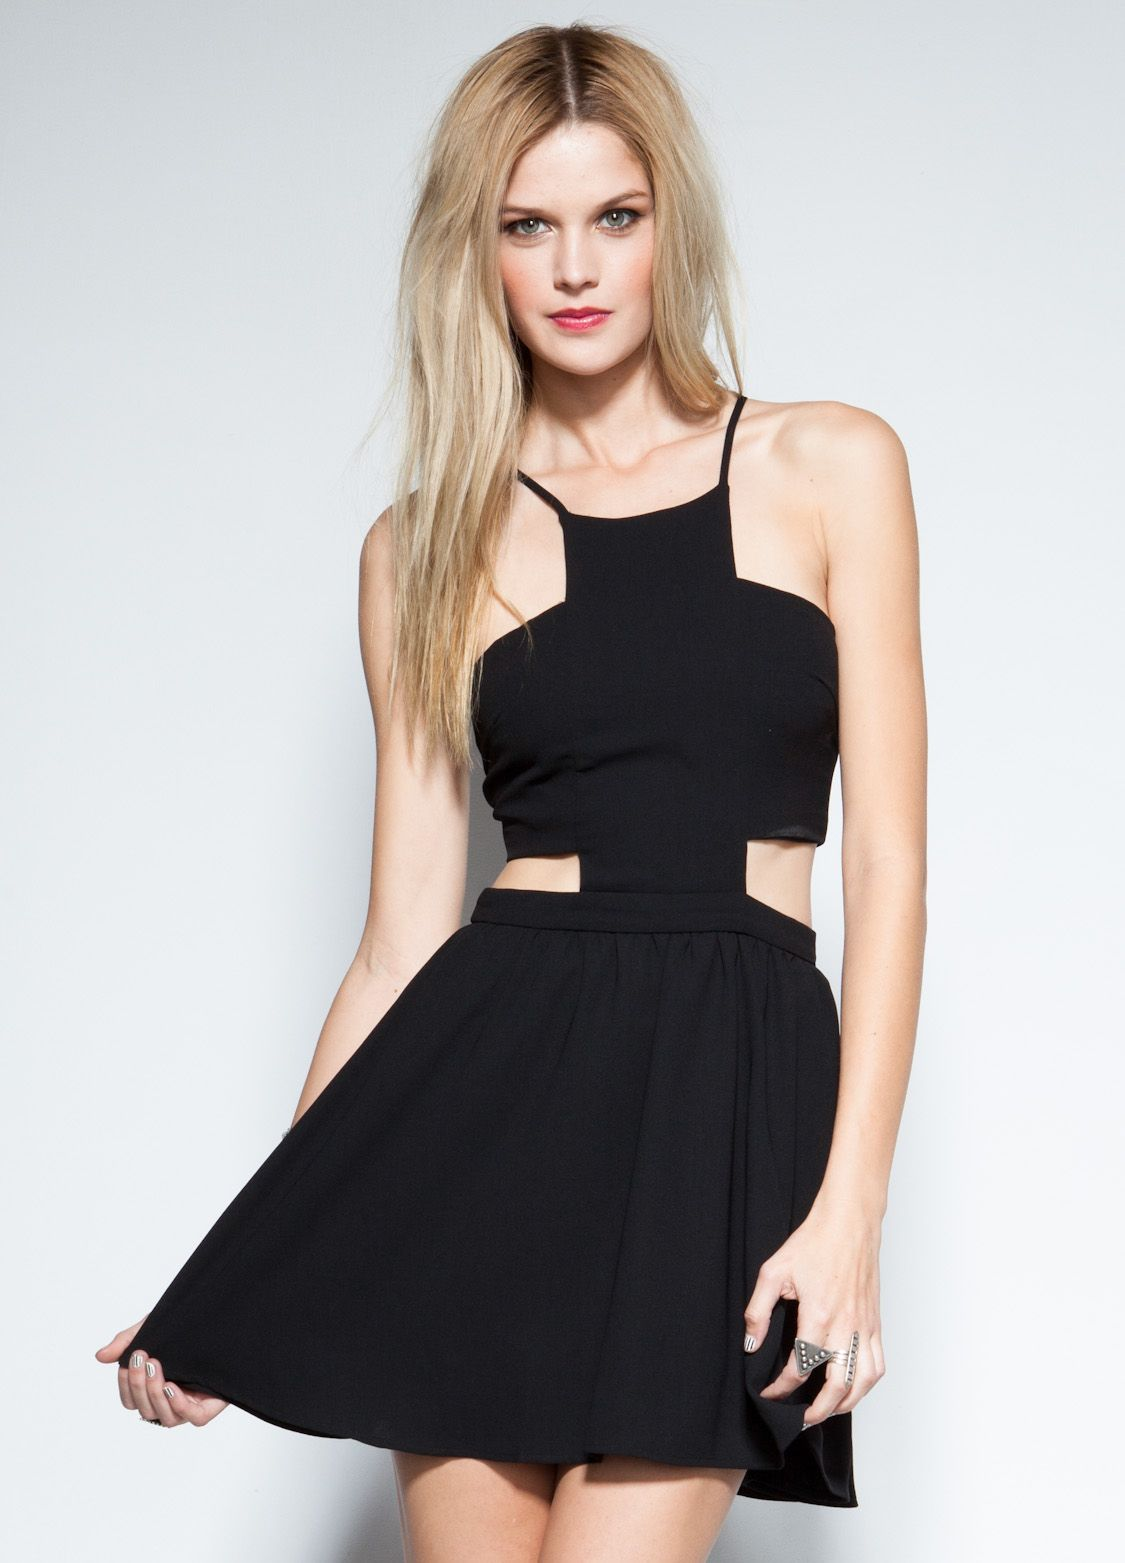 Love the structure little black dress featuring cut out and criss